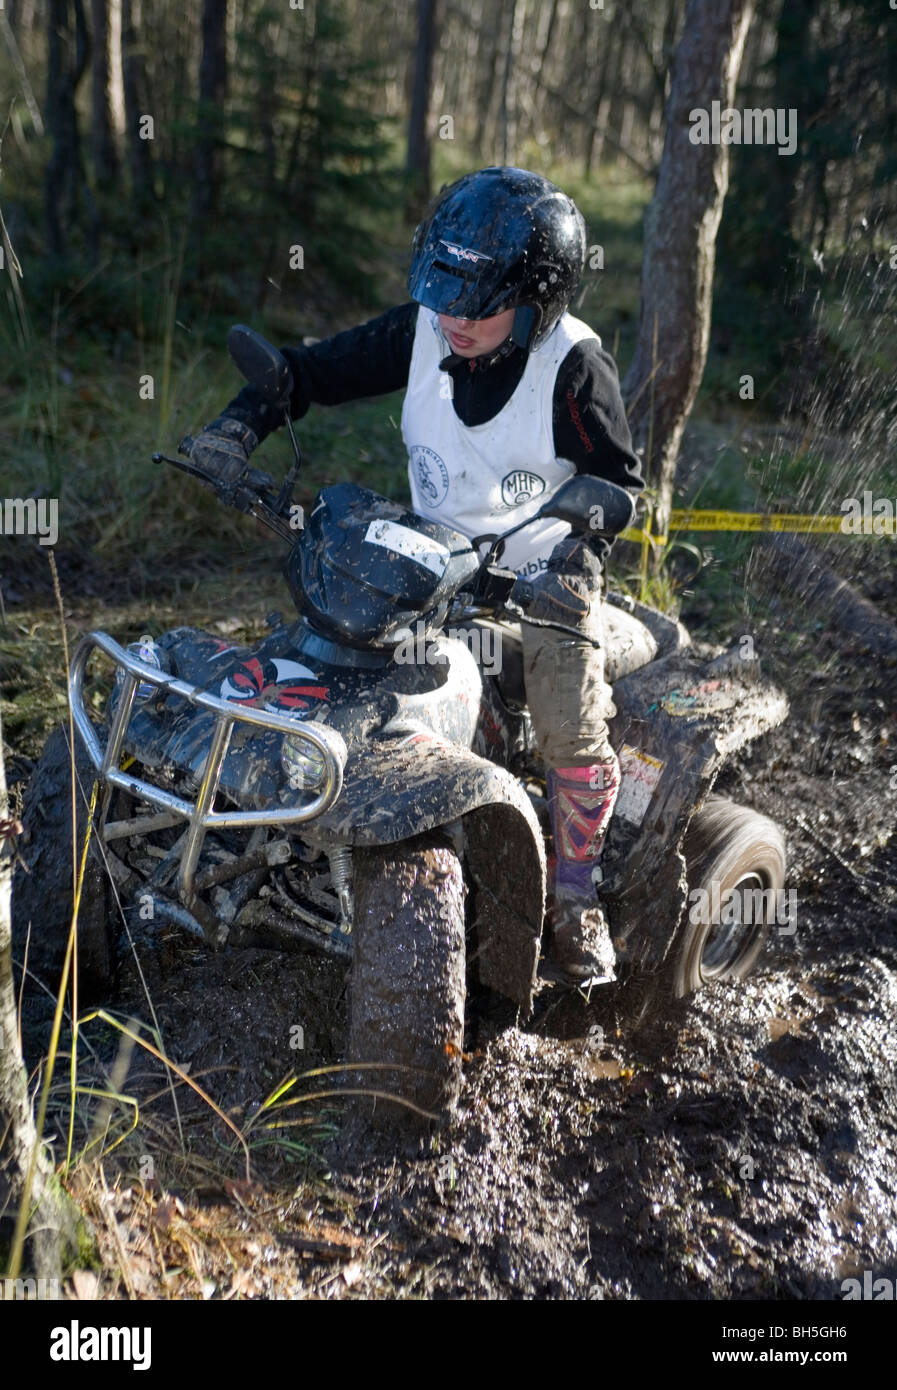 4 wheel trial. A boy rides all terrain vehicle off road - Stock Image